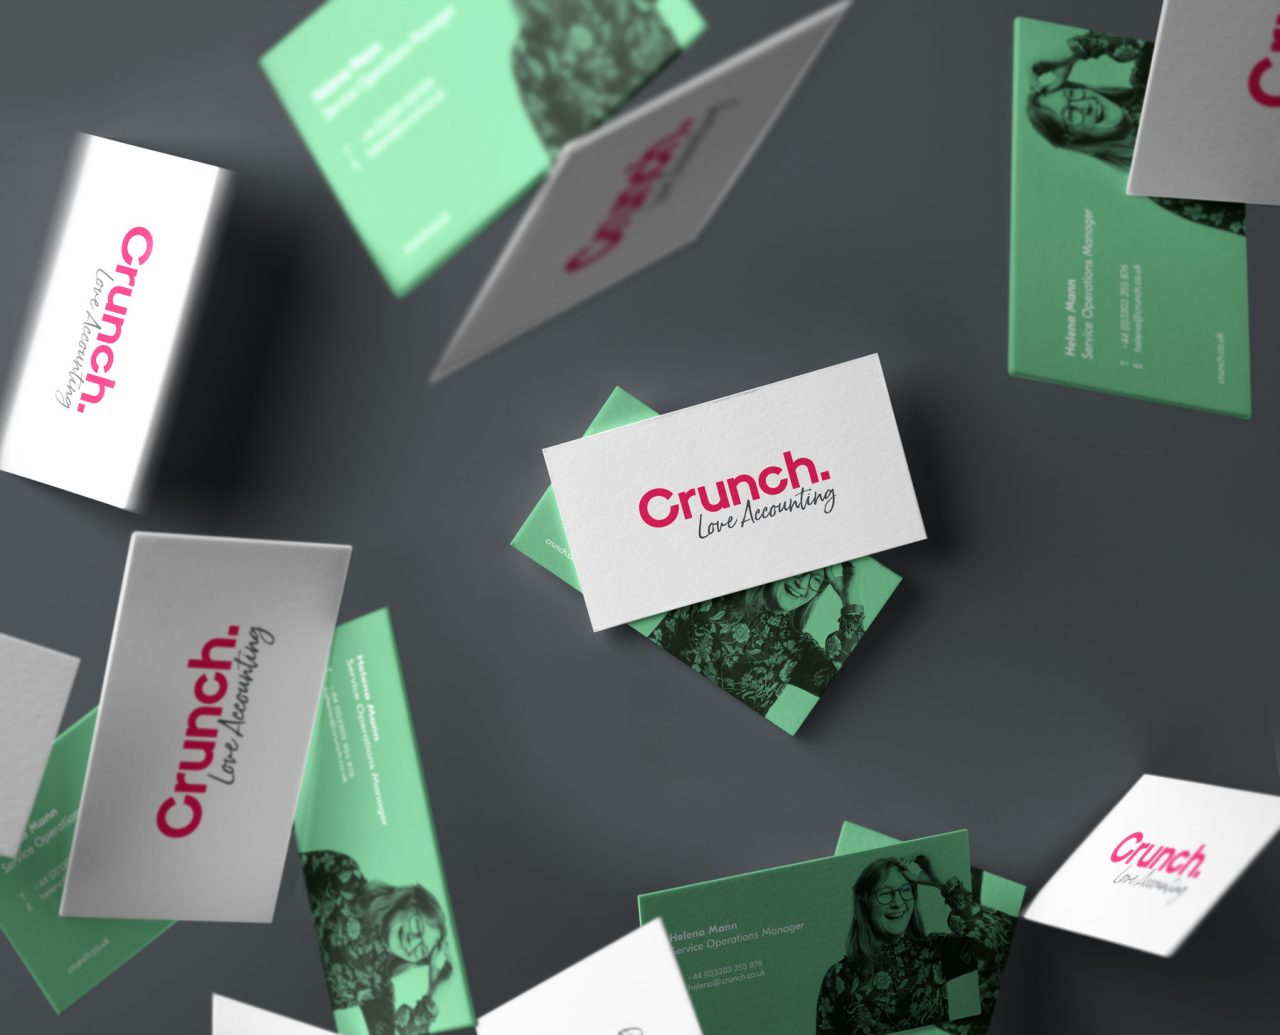 Crunch-Falling-Business-Card-Mockup-Vol3